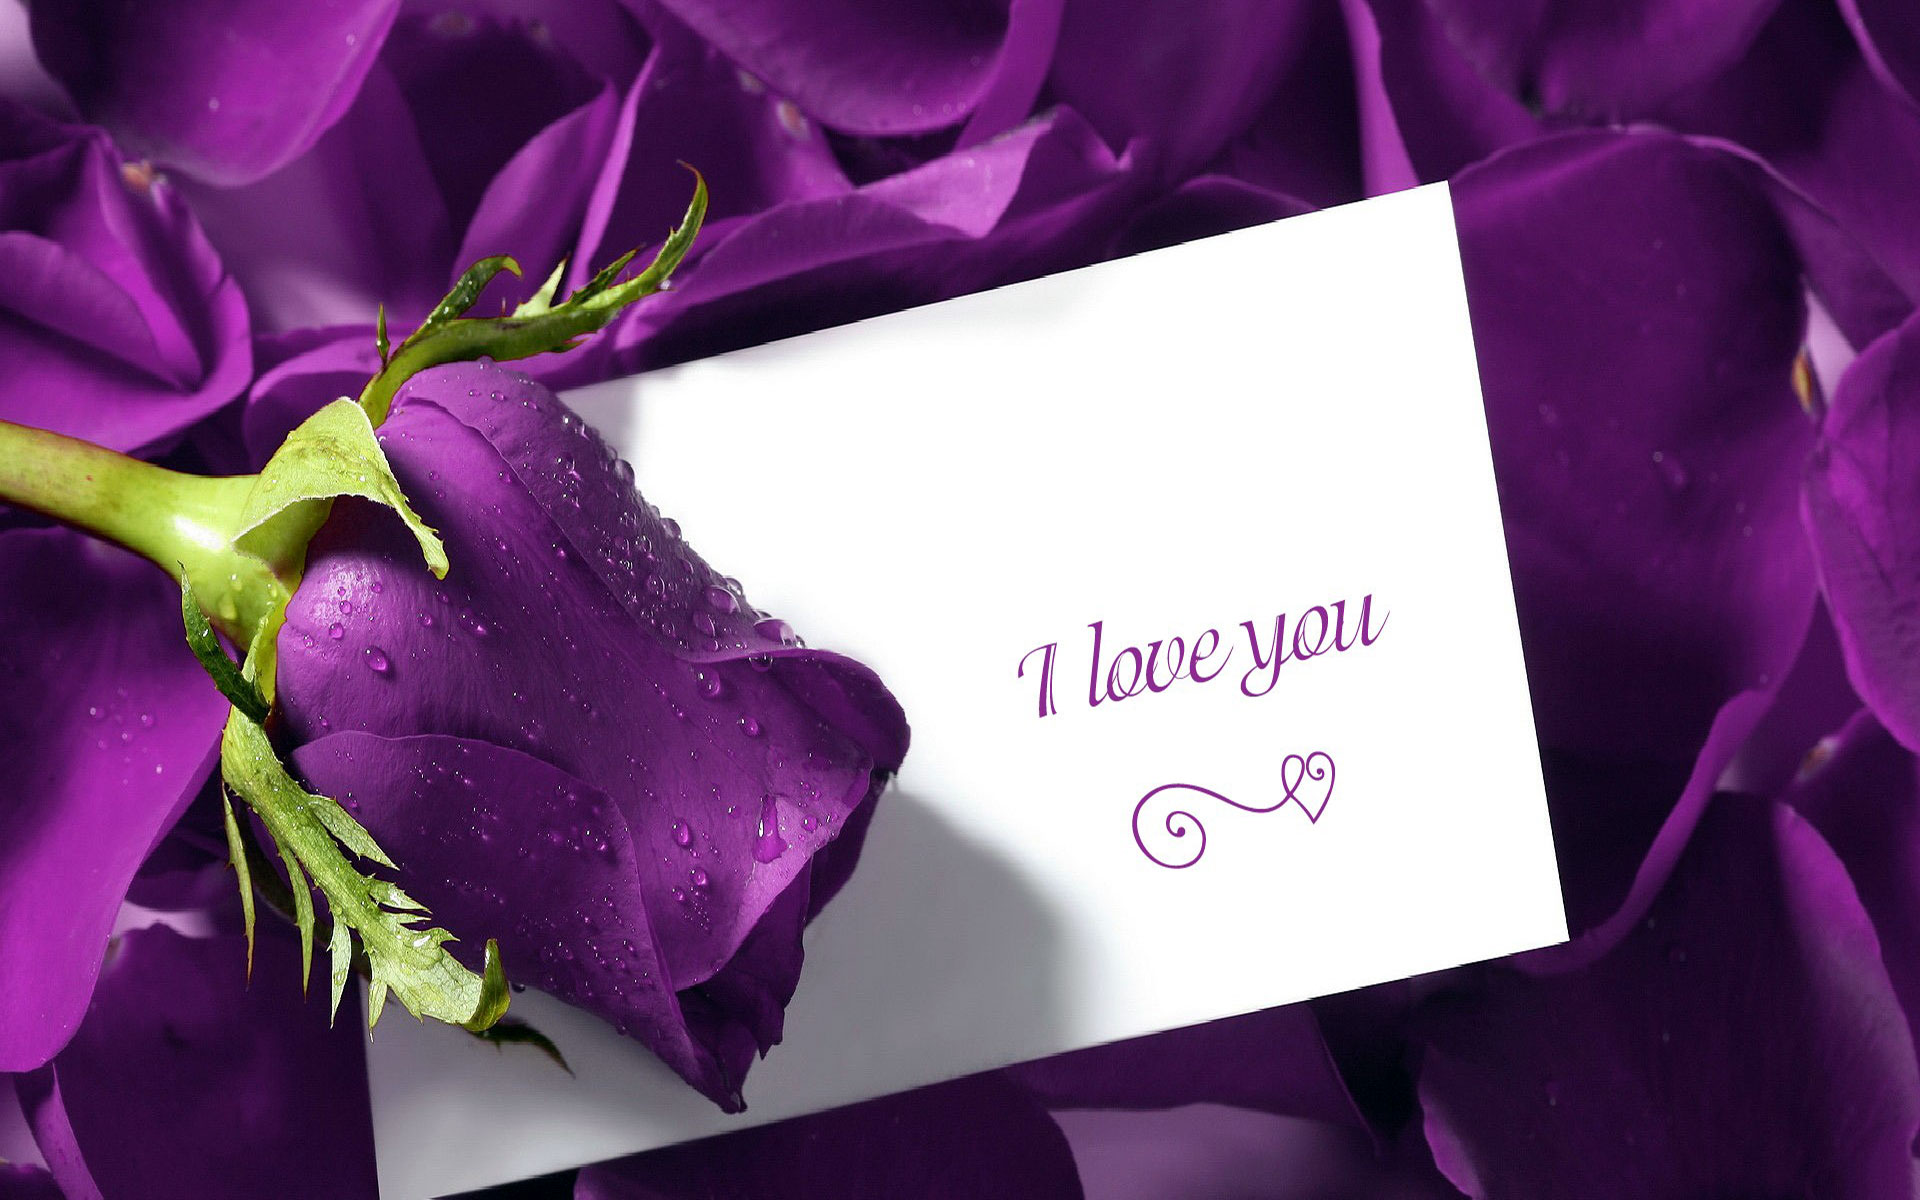 25 Free Hd I Love You Wallpapers Cute I Love You Images - Purple Rose Of Love , HD Wallpaper & Backgrounds